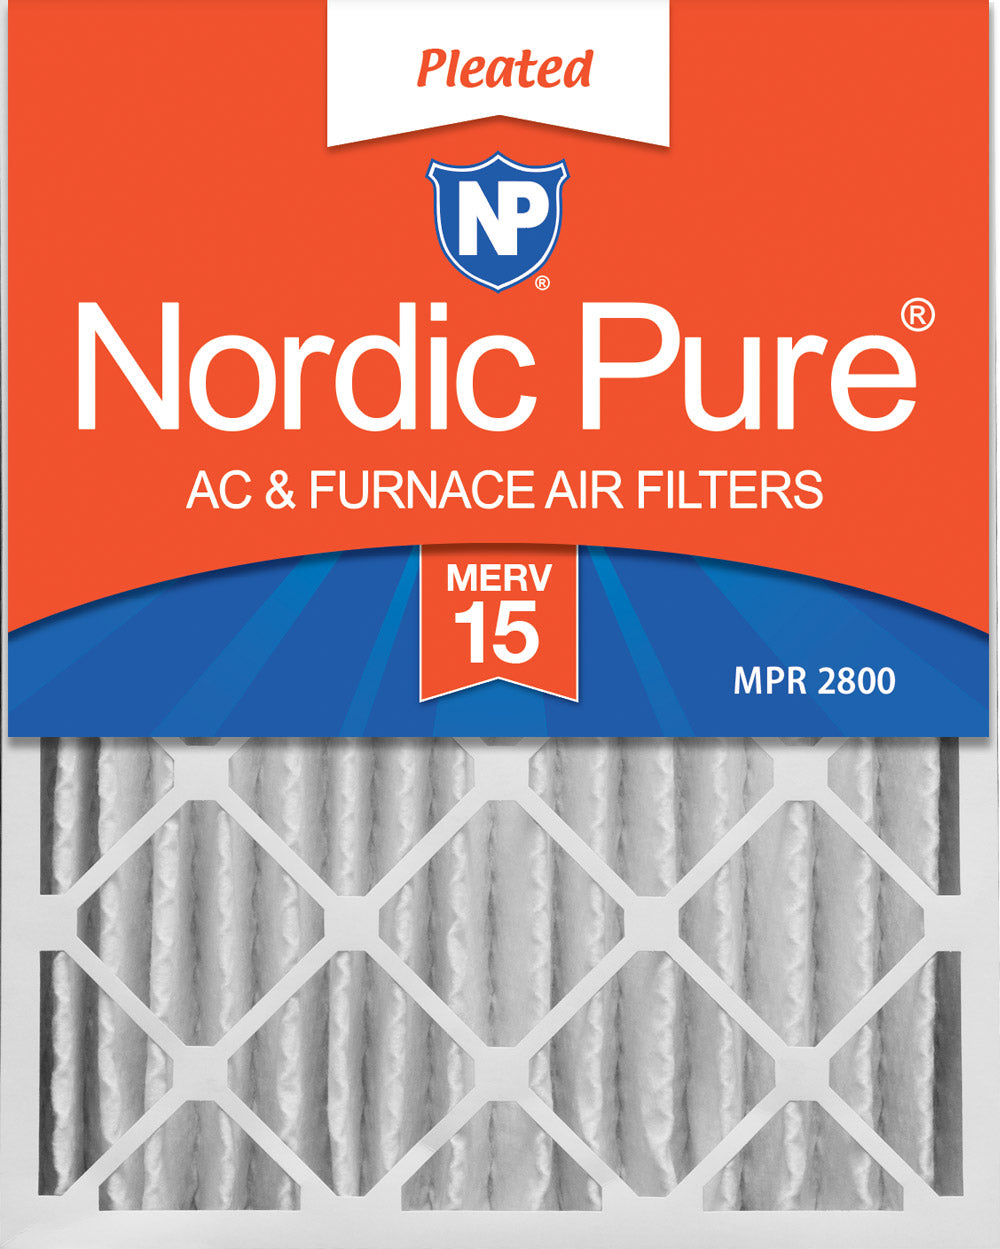 20x25x4 (3 5/8) Pleated MERV 15 Air Filters 6 Pack